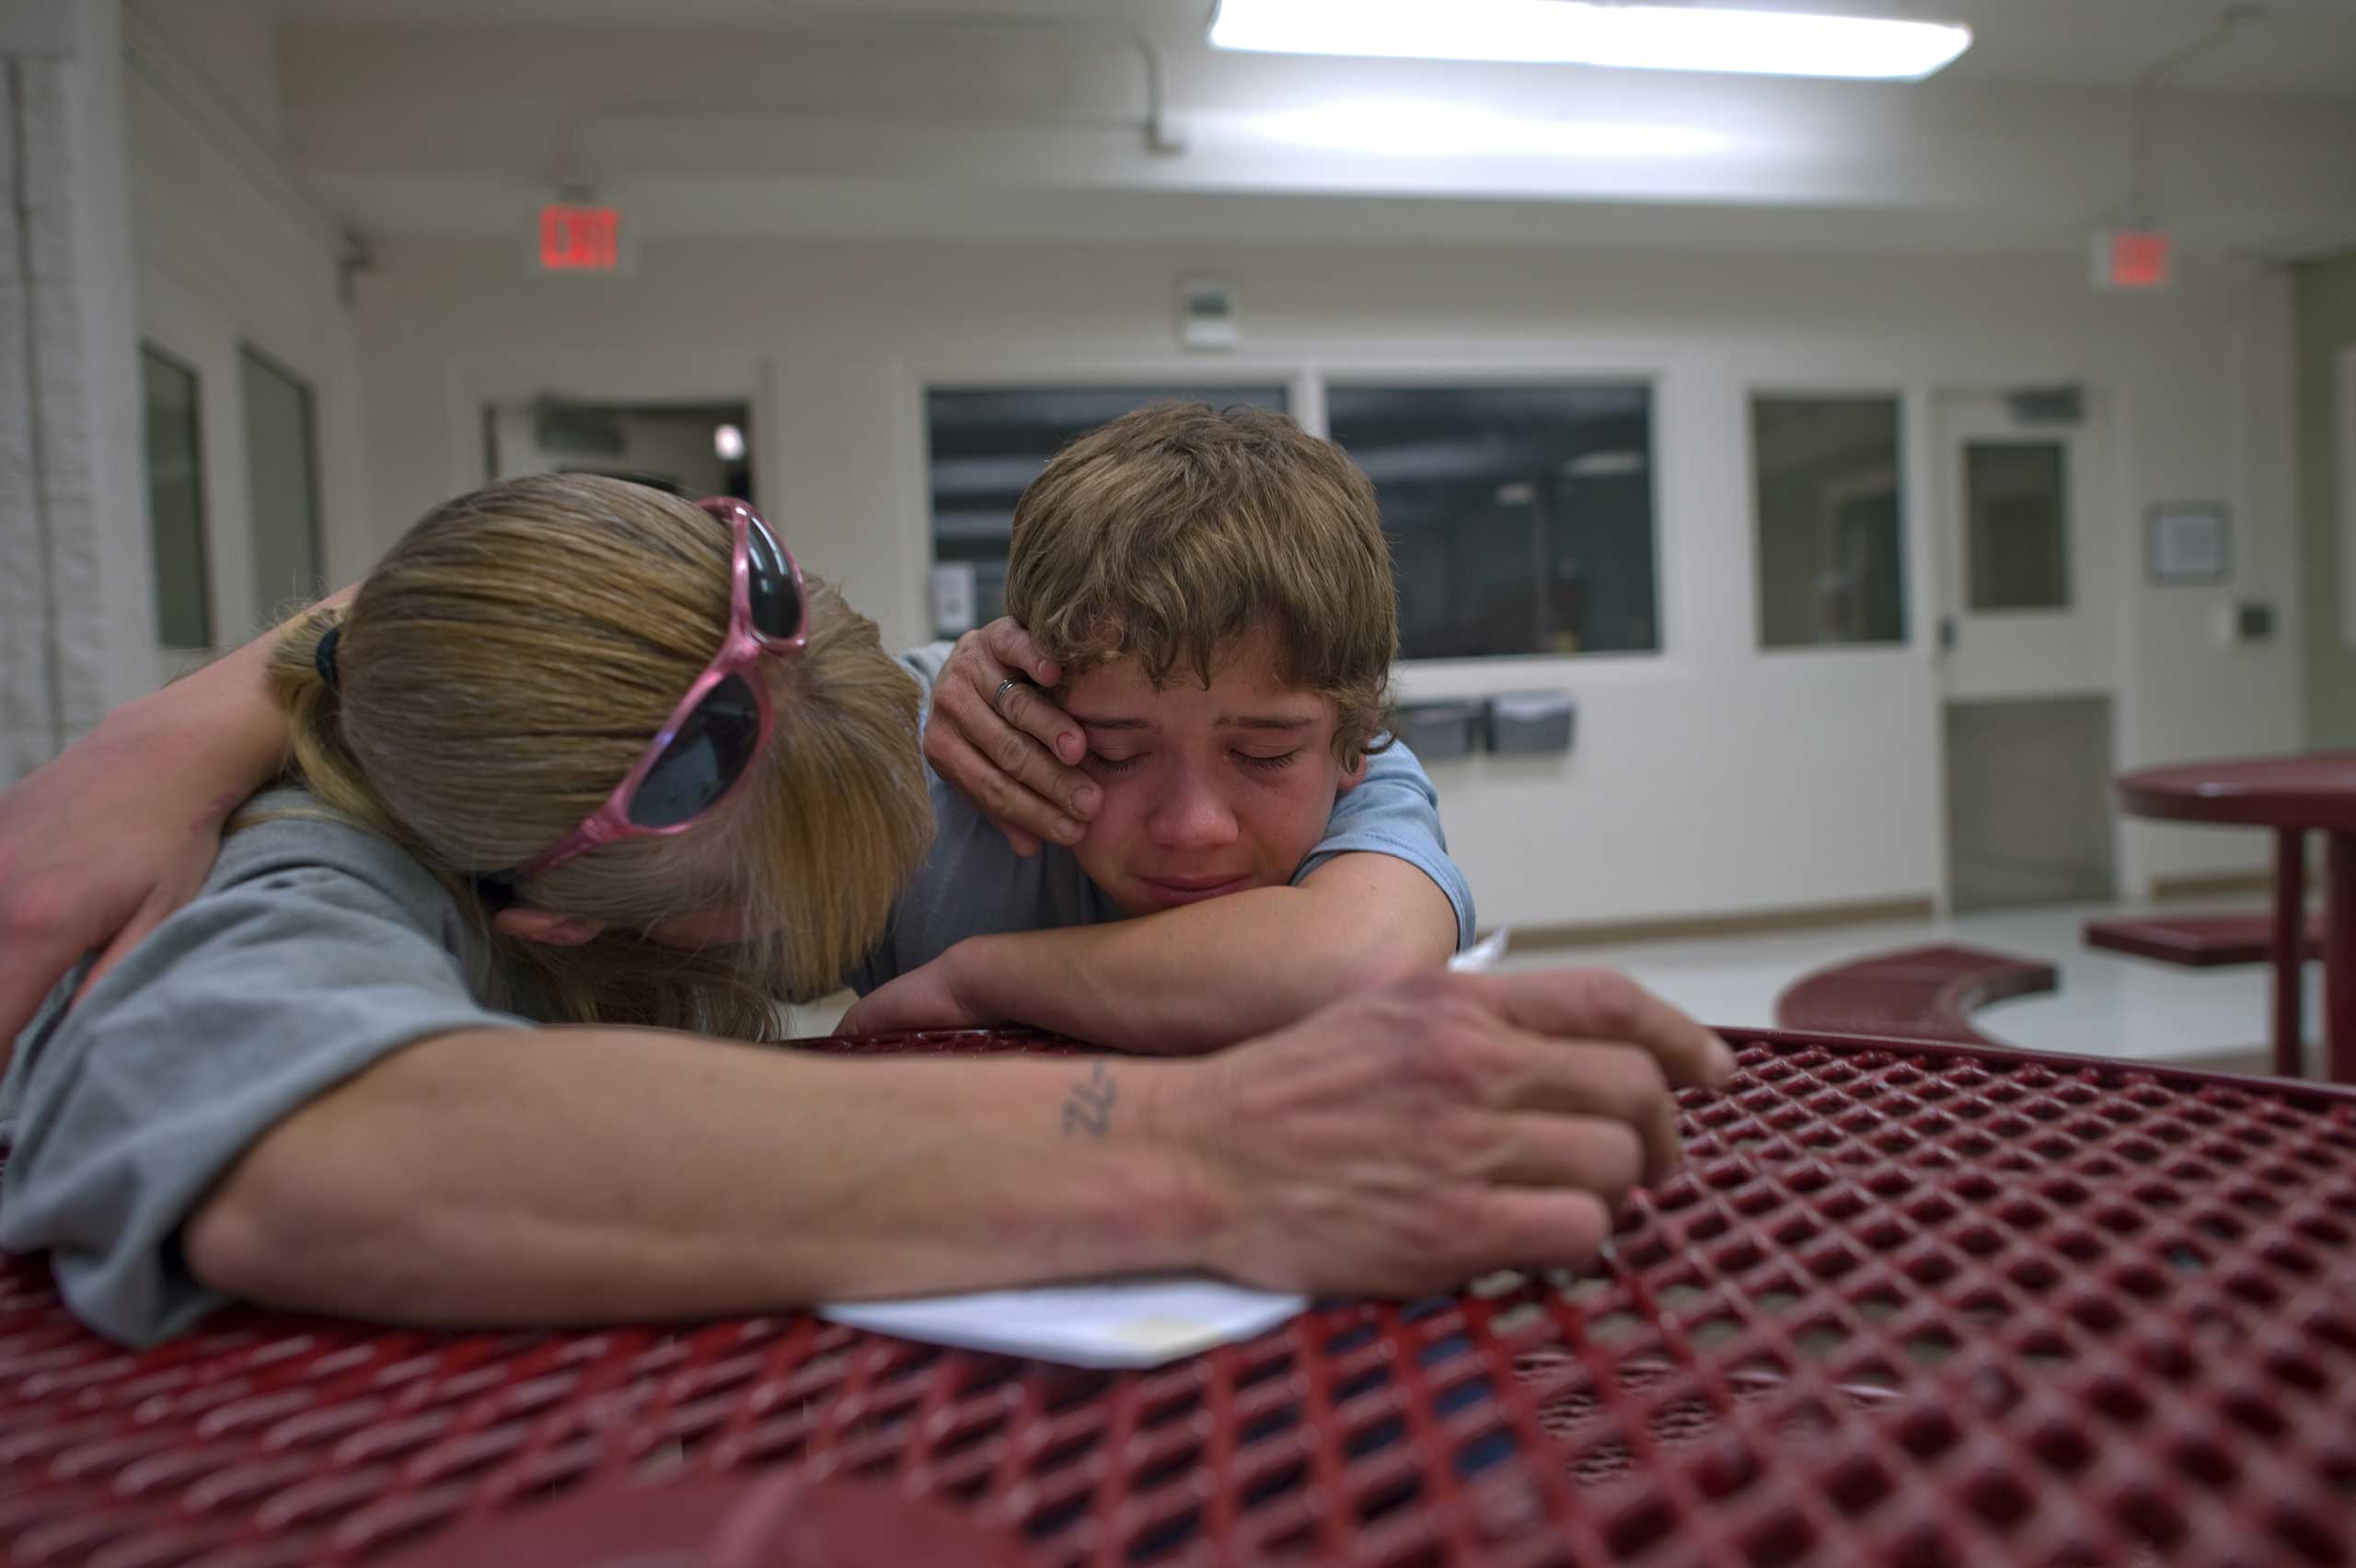 Vinny's mother Eve comforts him during visitation at the detention center.